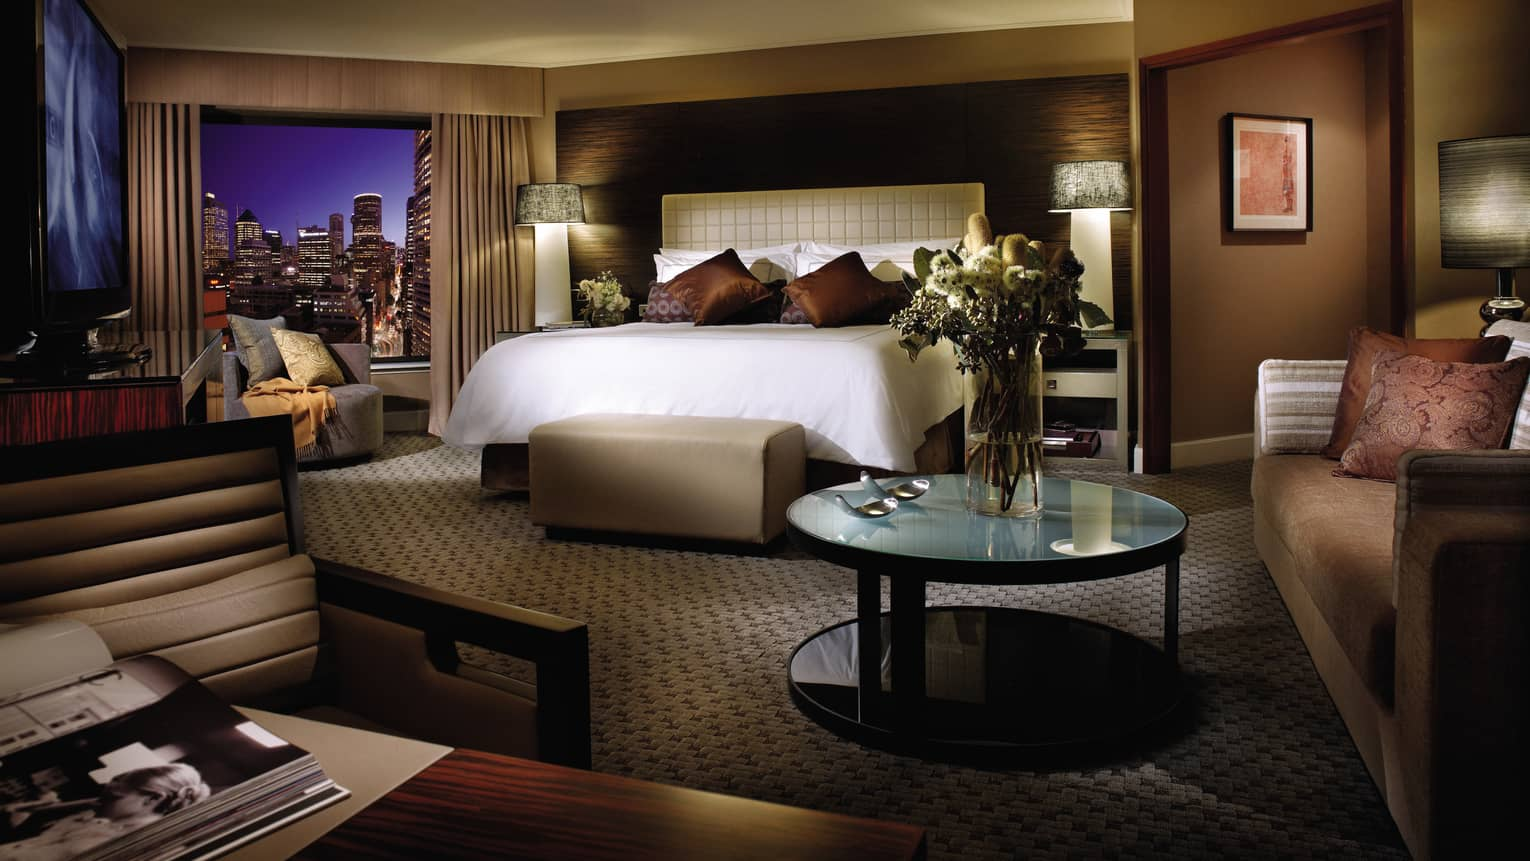 Premier City Room bed, accent pillows under ceiling lamp, city lights at night from window